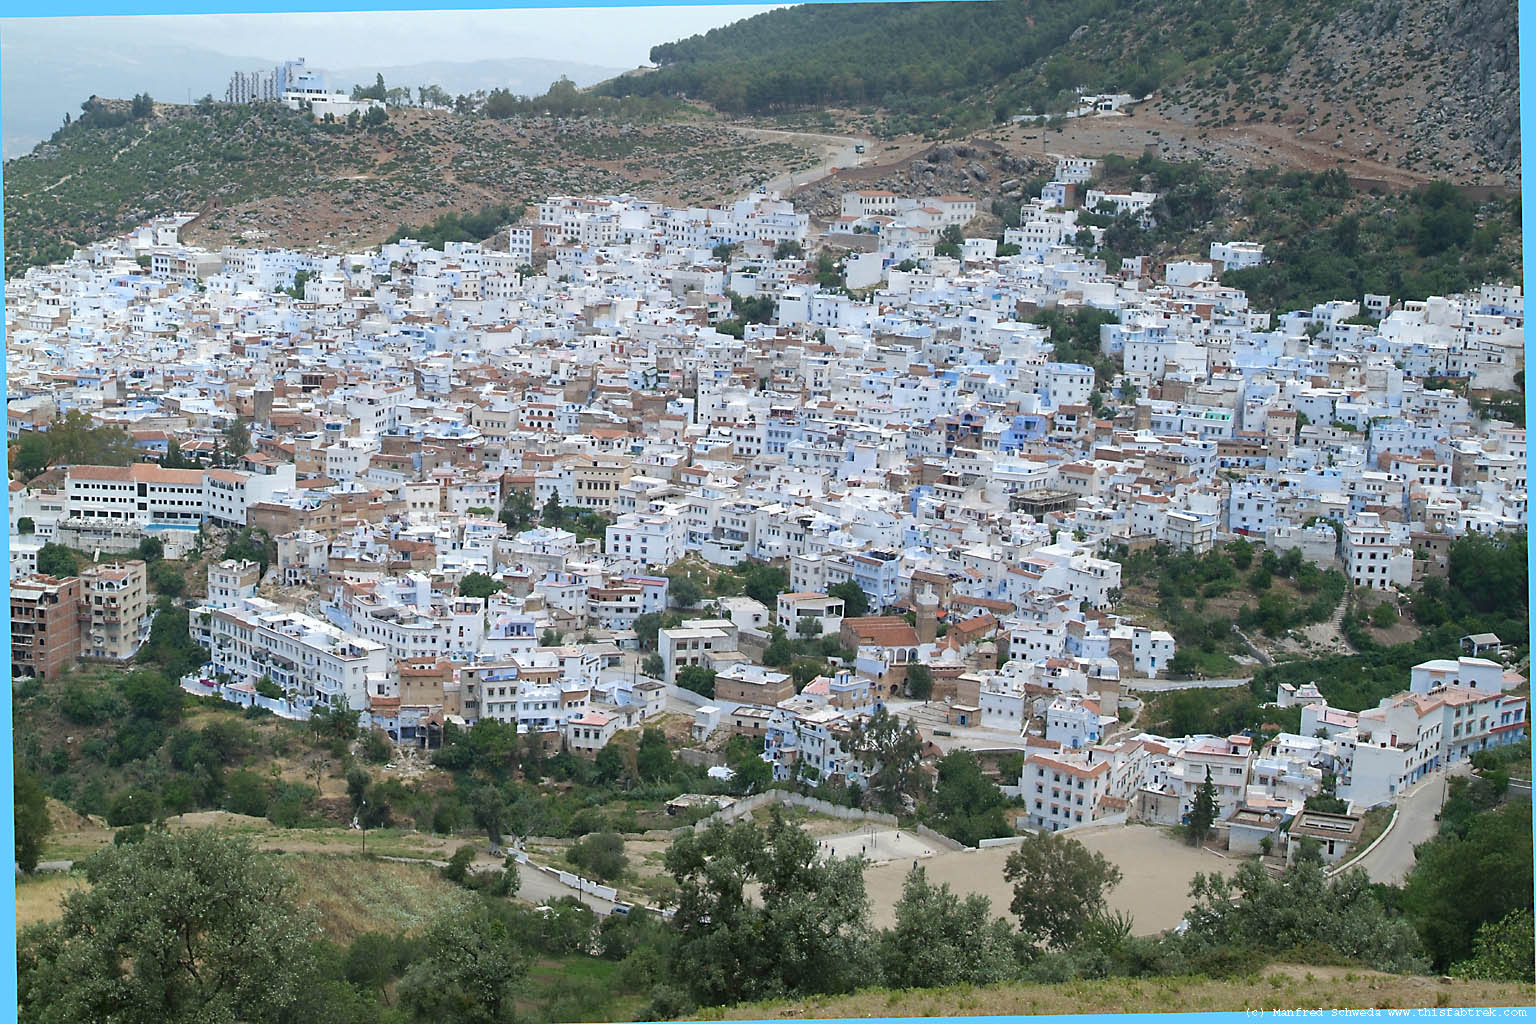 Chefchaouen Morocco  city images : chefchaouen morocco 7